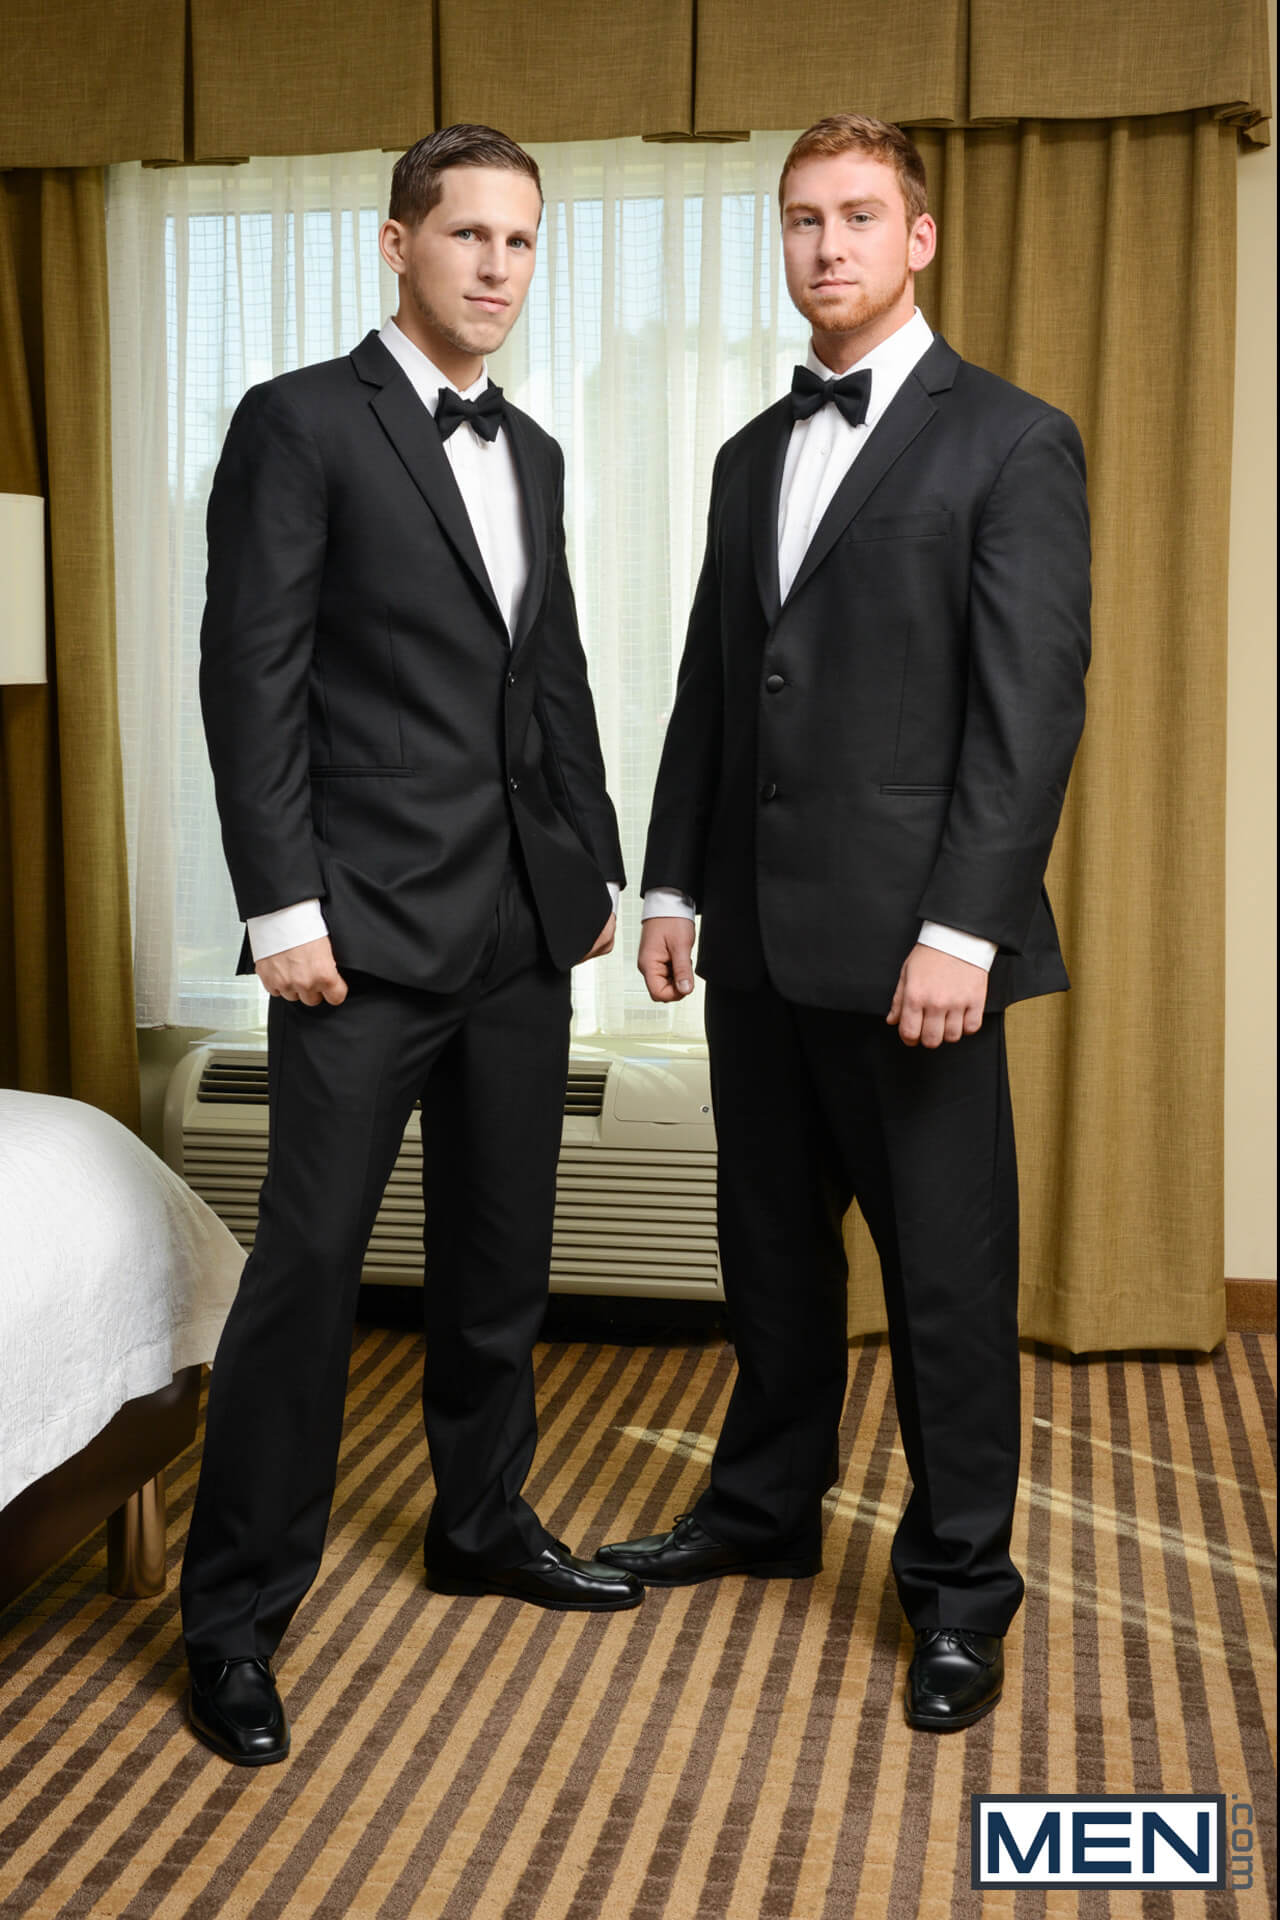 men str8 to gay the groomsmen part 3 connor maguire roman todd gay porn blog image 1